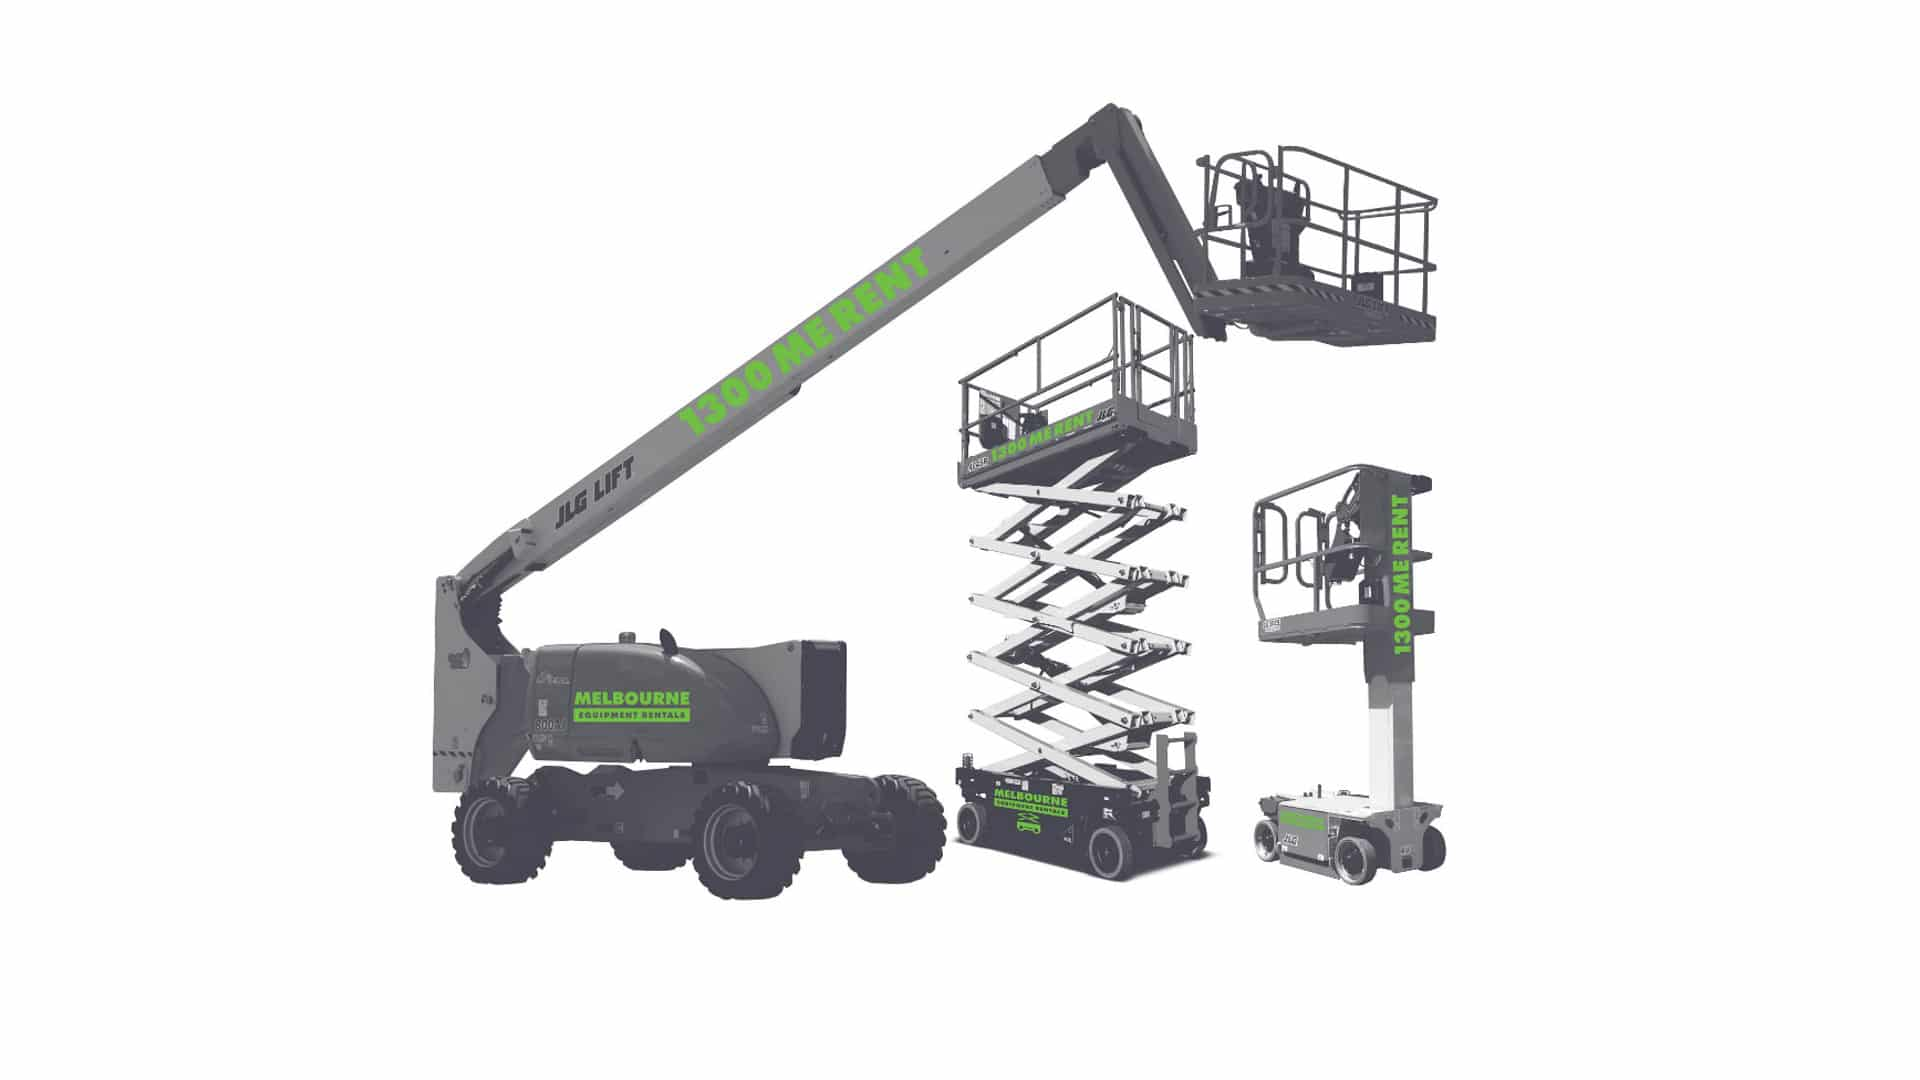 Melbourne Equipment Rentals | 1300 ME RENT (1300 63 7368)